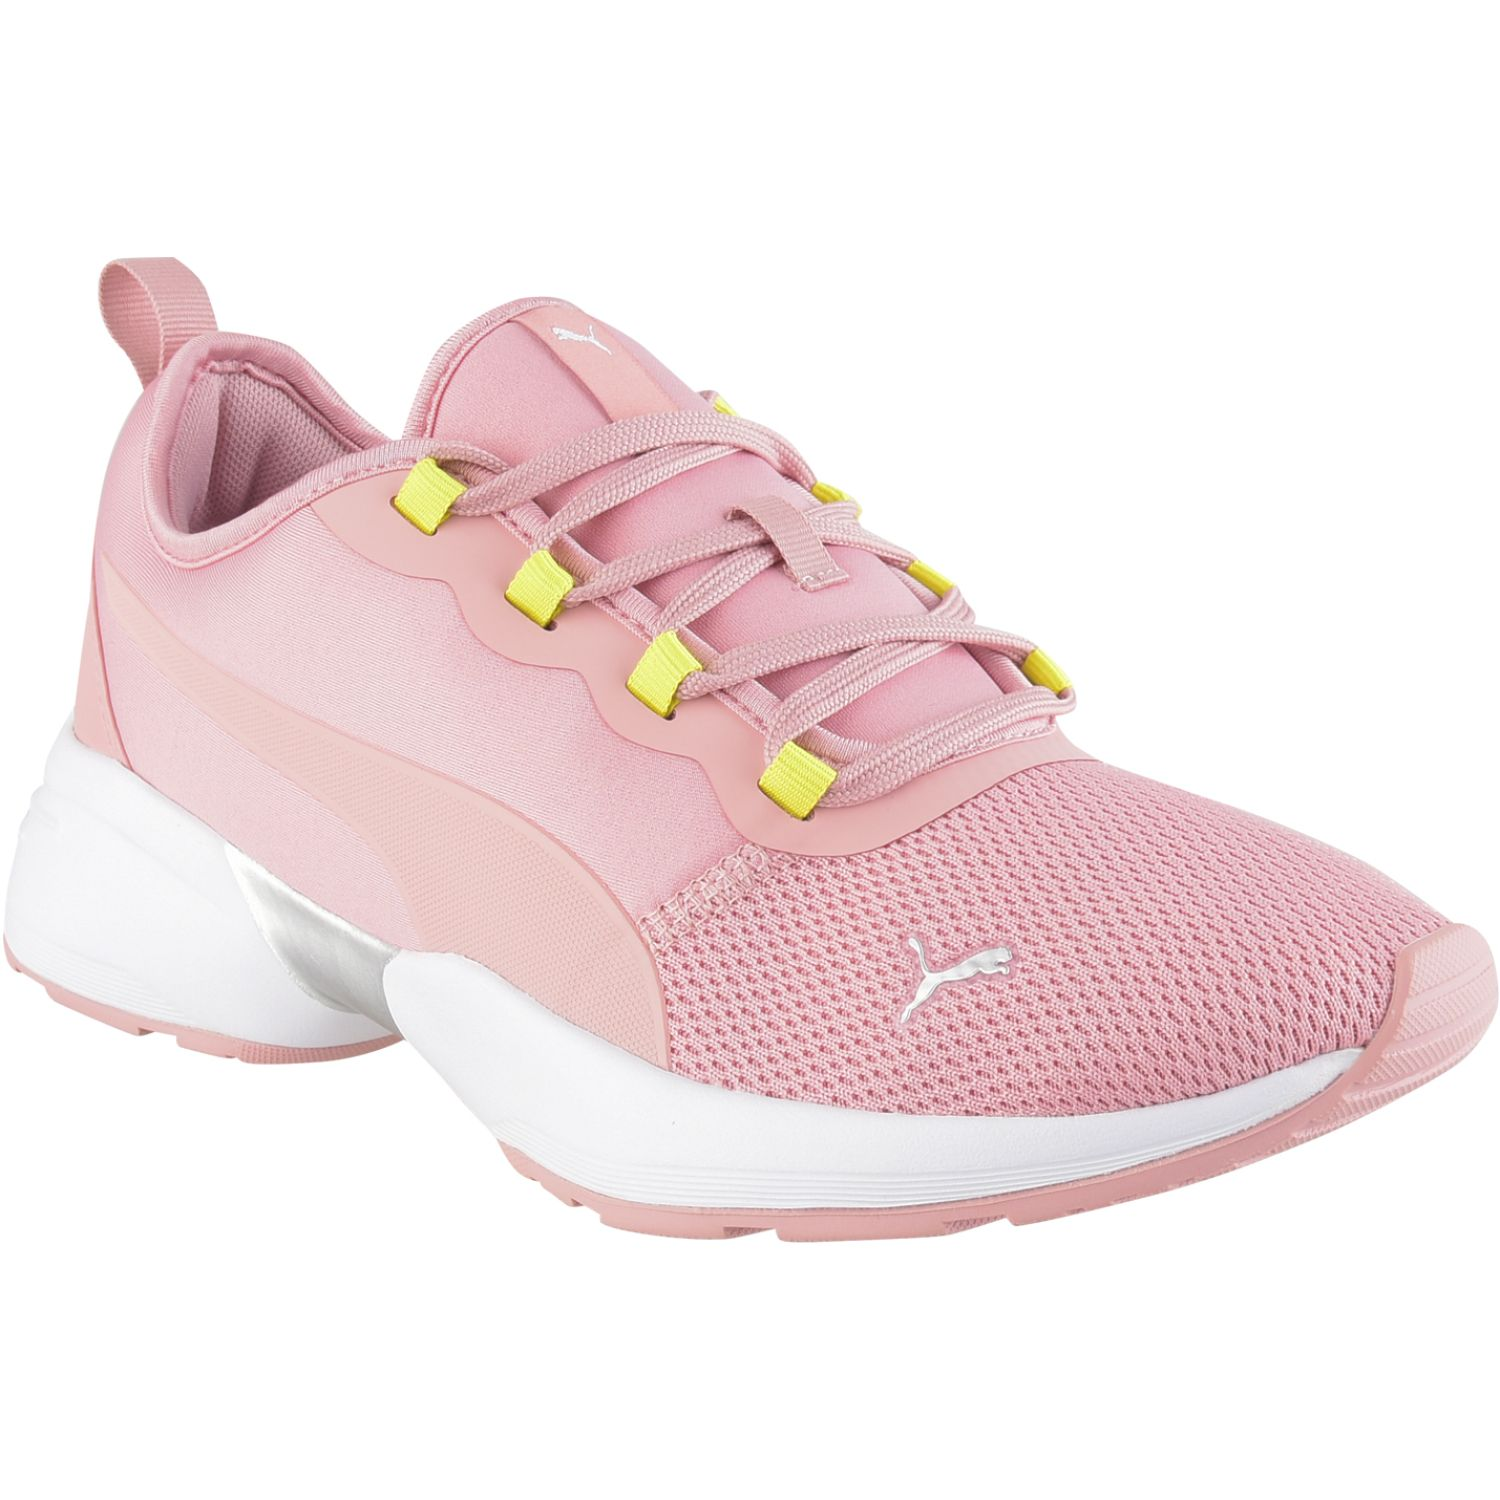 Puma sirena sport shift Rosado / blanco Walking